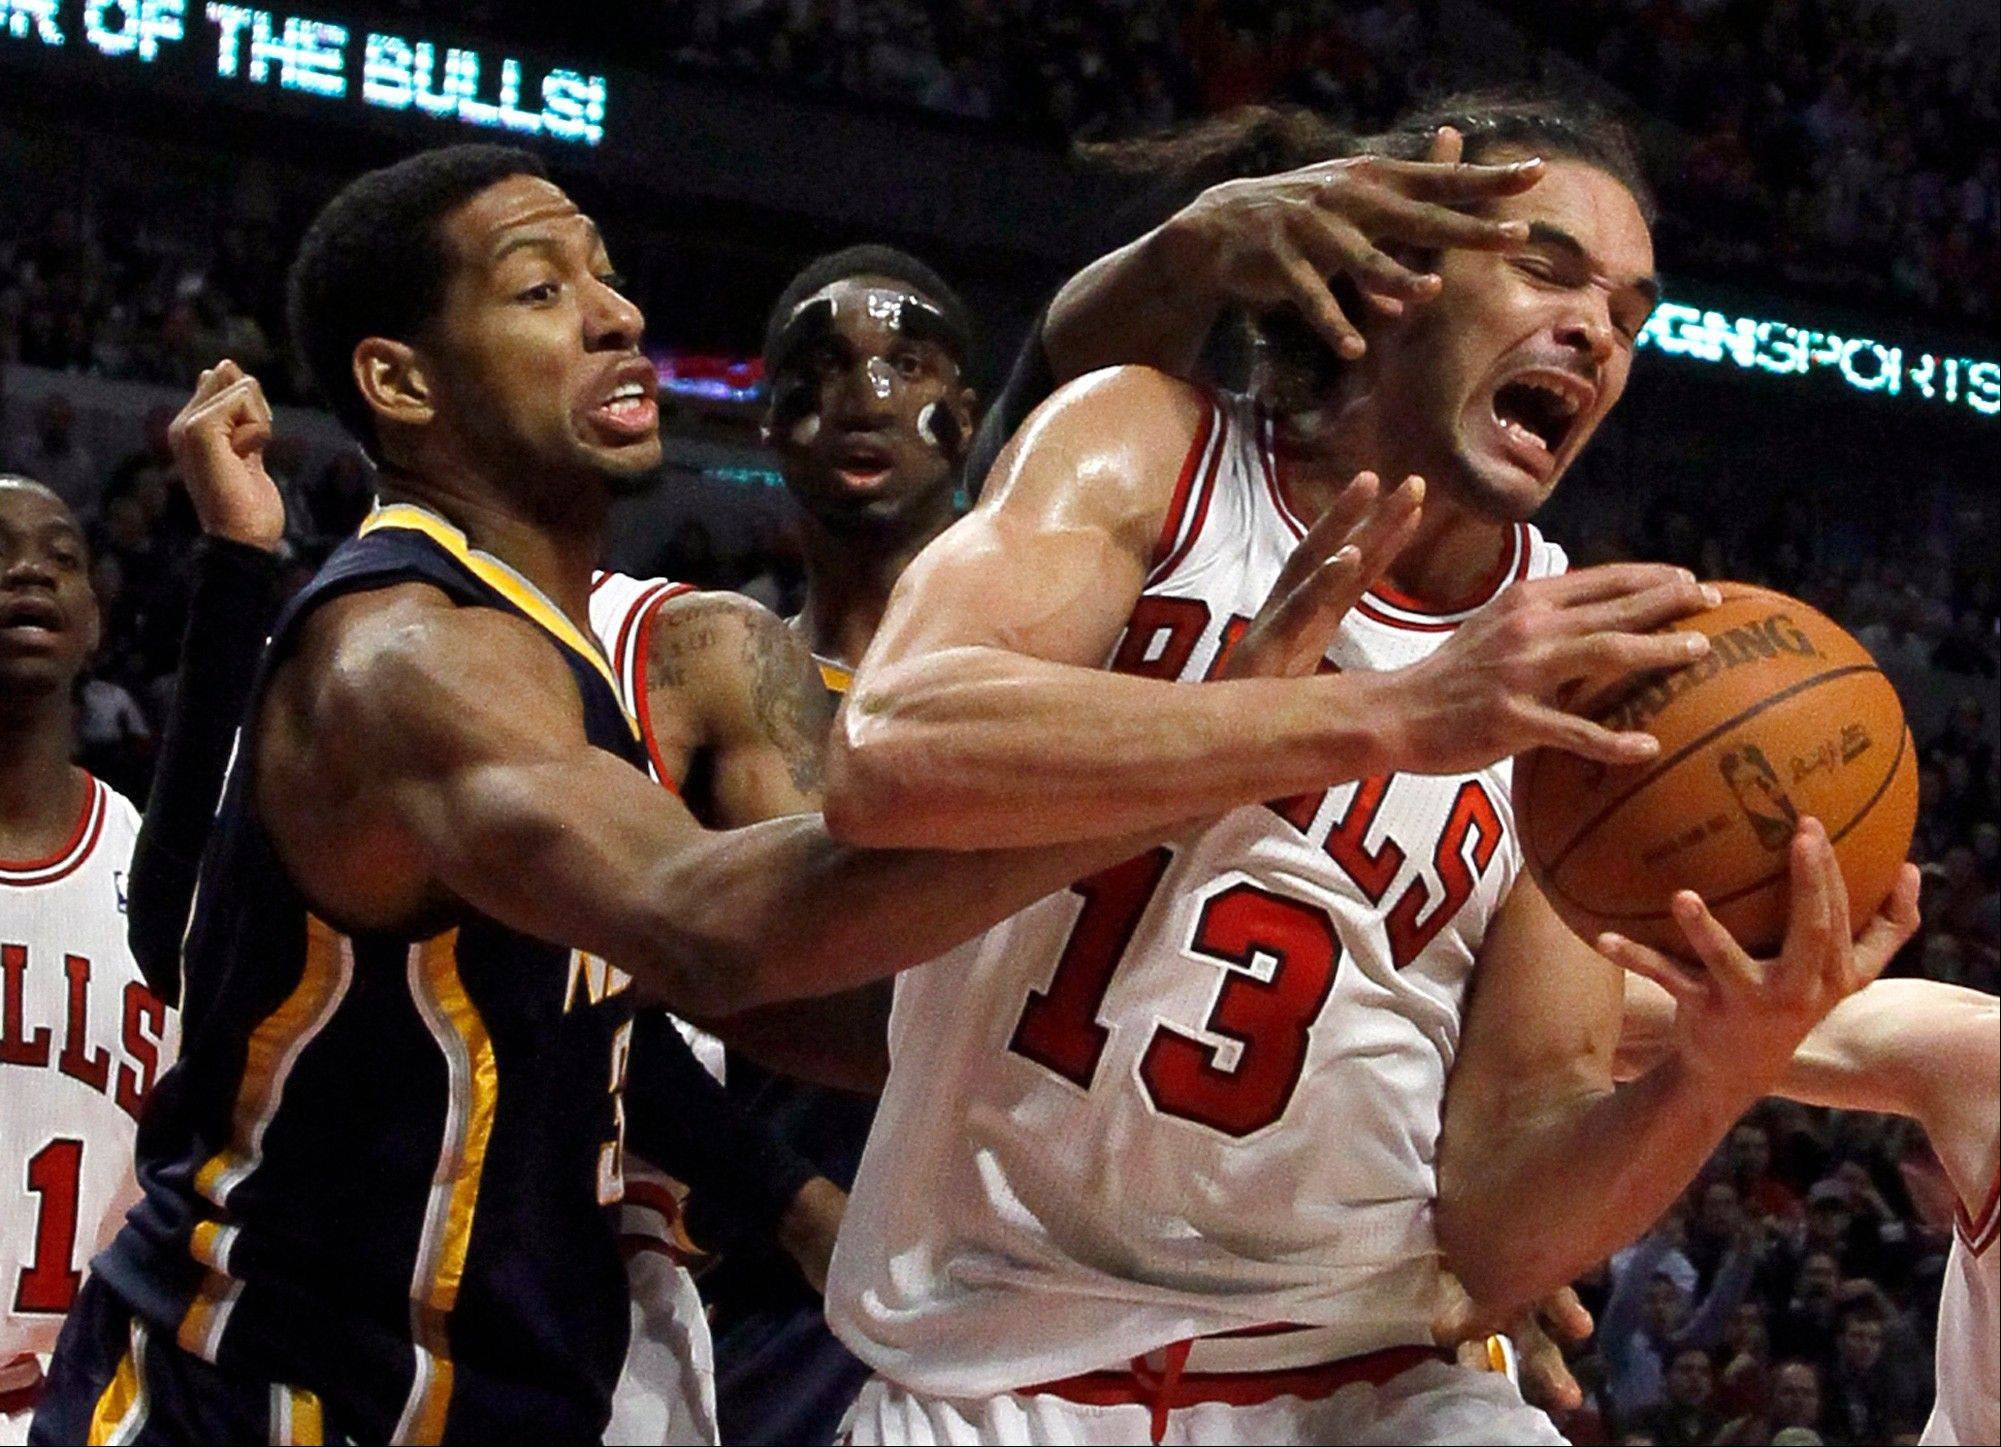 The Indiana Pacers roughed up the short-handed Bulls on Wednesday, handing them their first home loss of the season. The improving Milwaukee Bucks will try to make a similar statement Friday before the Bulls leave on a two-week road trip.